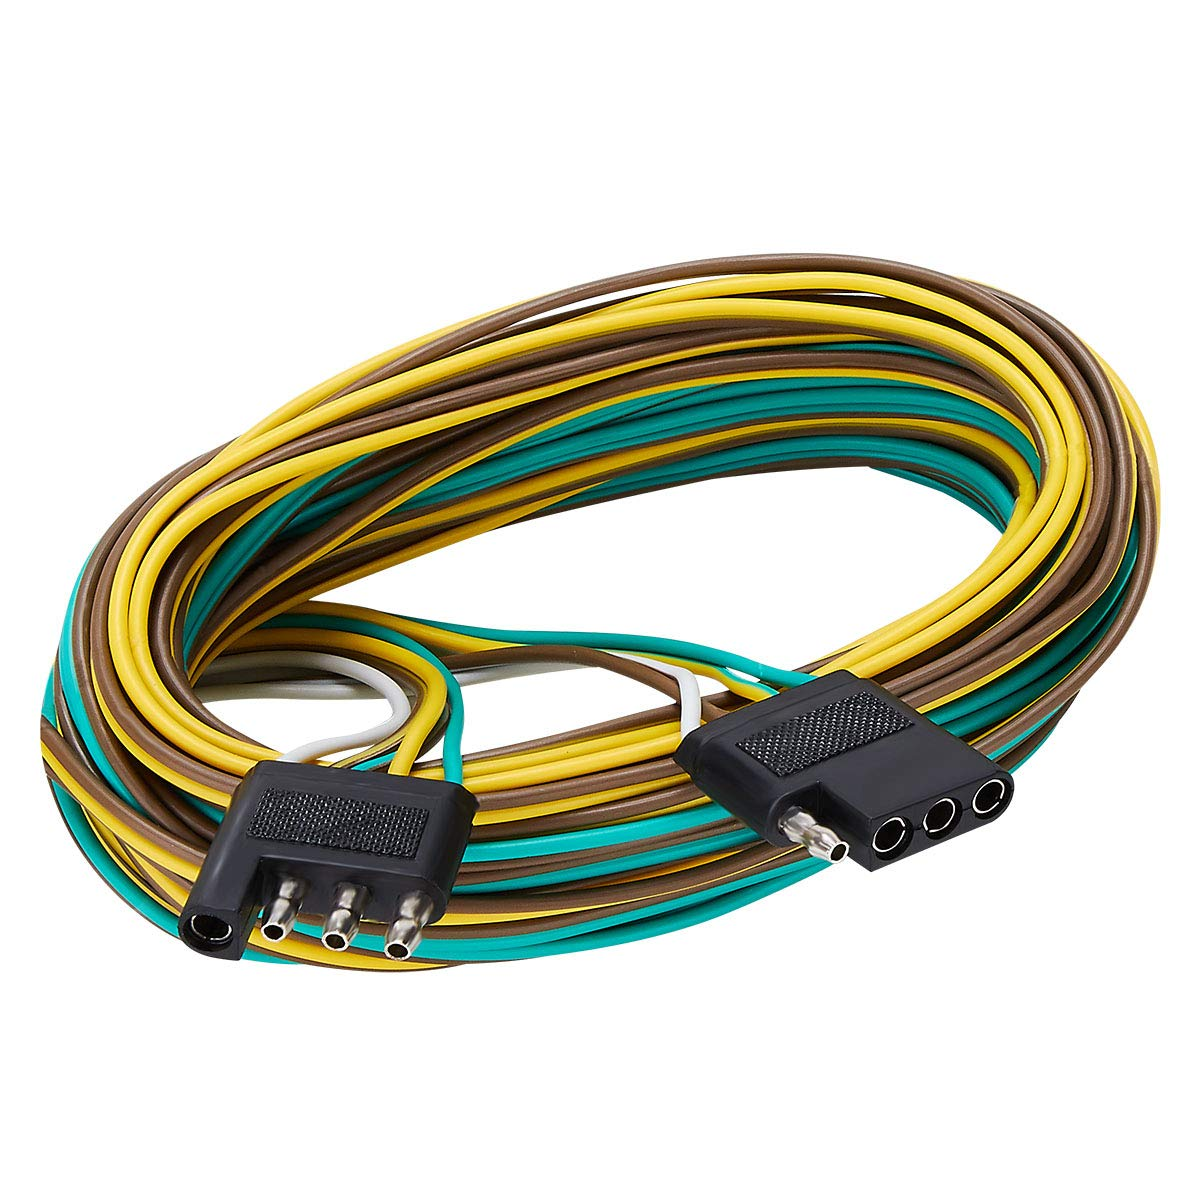 SUZCO Trailer Wiring Harness with 4-Flat Connector Extension, 25' Feet, 4-Way 4-Pin Plug Flat 20 Gauge – Hitch Light Trailer Wiring Harness Extender